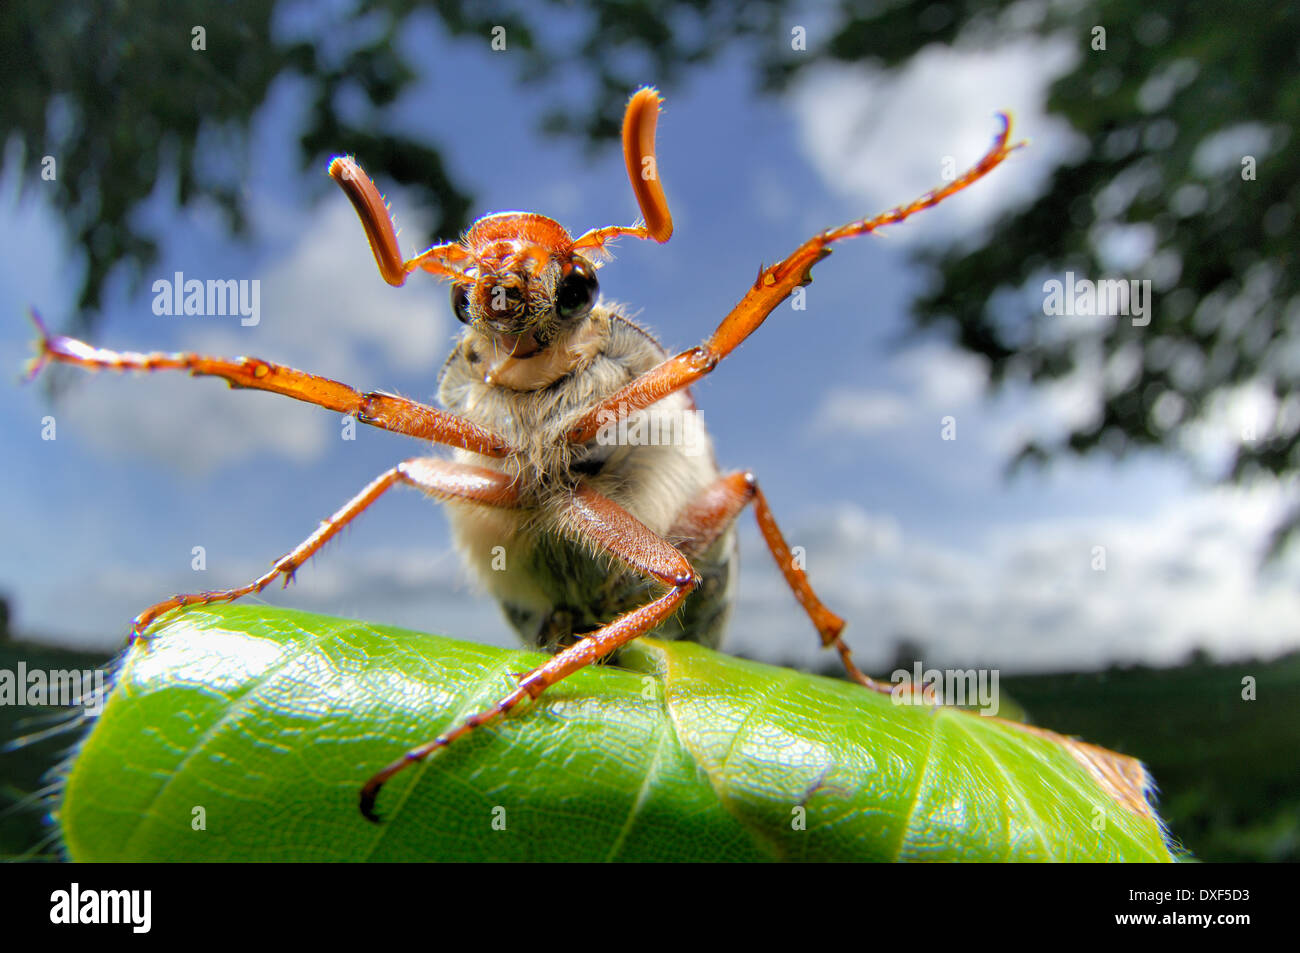 The cockchafer or may bug (Melolontha melolontha) Stock Photo